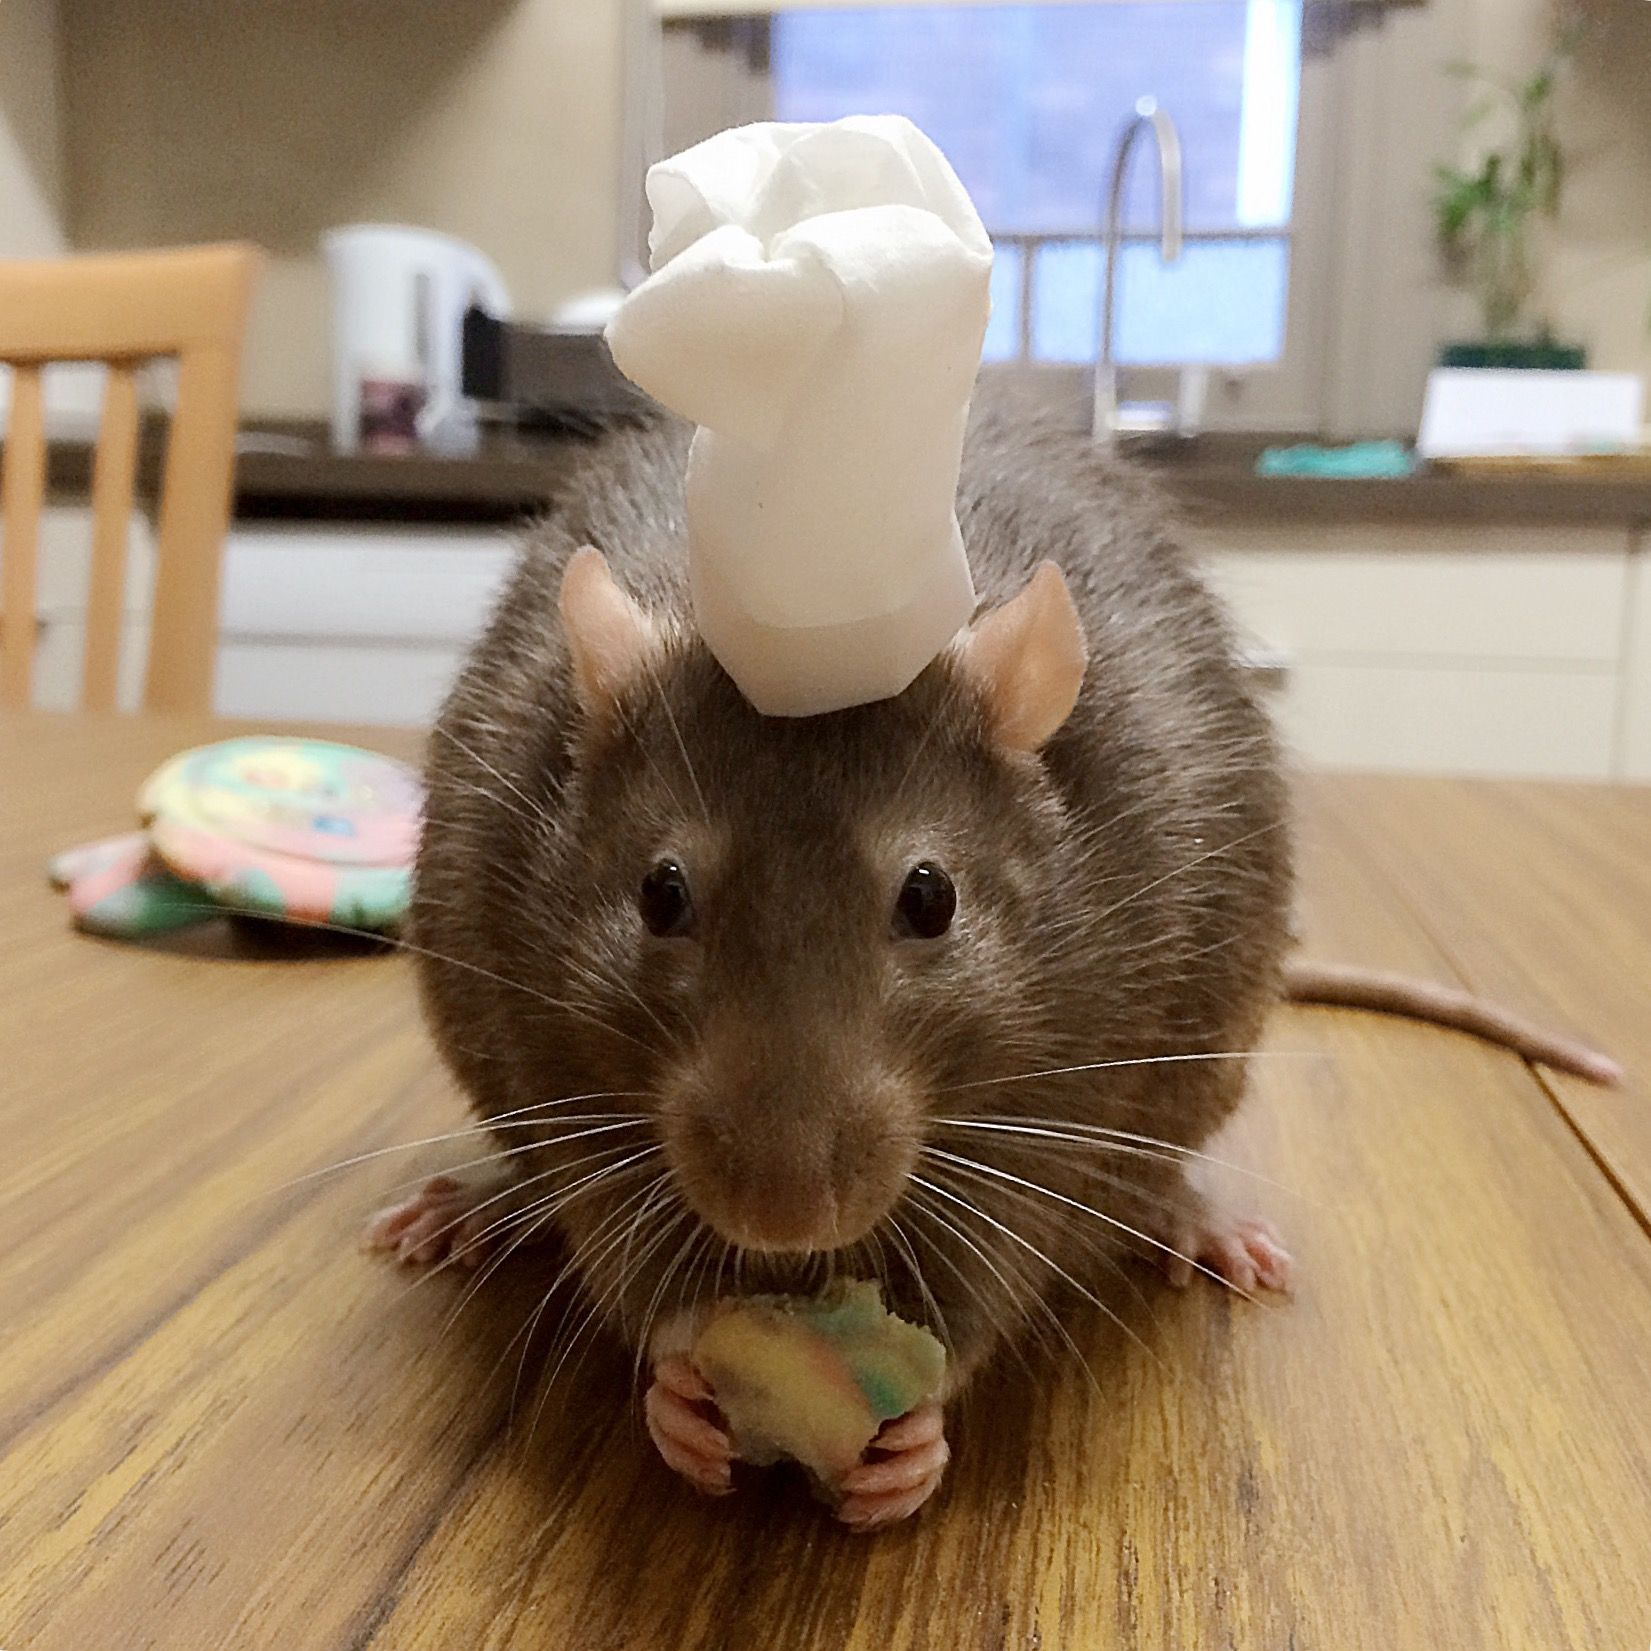 My Pet Rat Tate Helping Me Bake Cookies In His Chef Hat Pet Rats Pets Animals